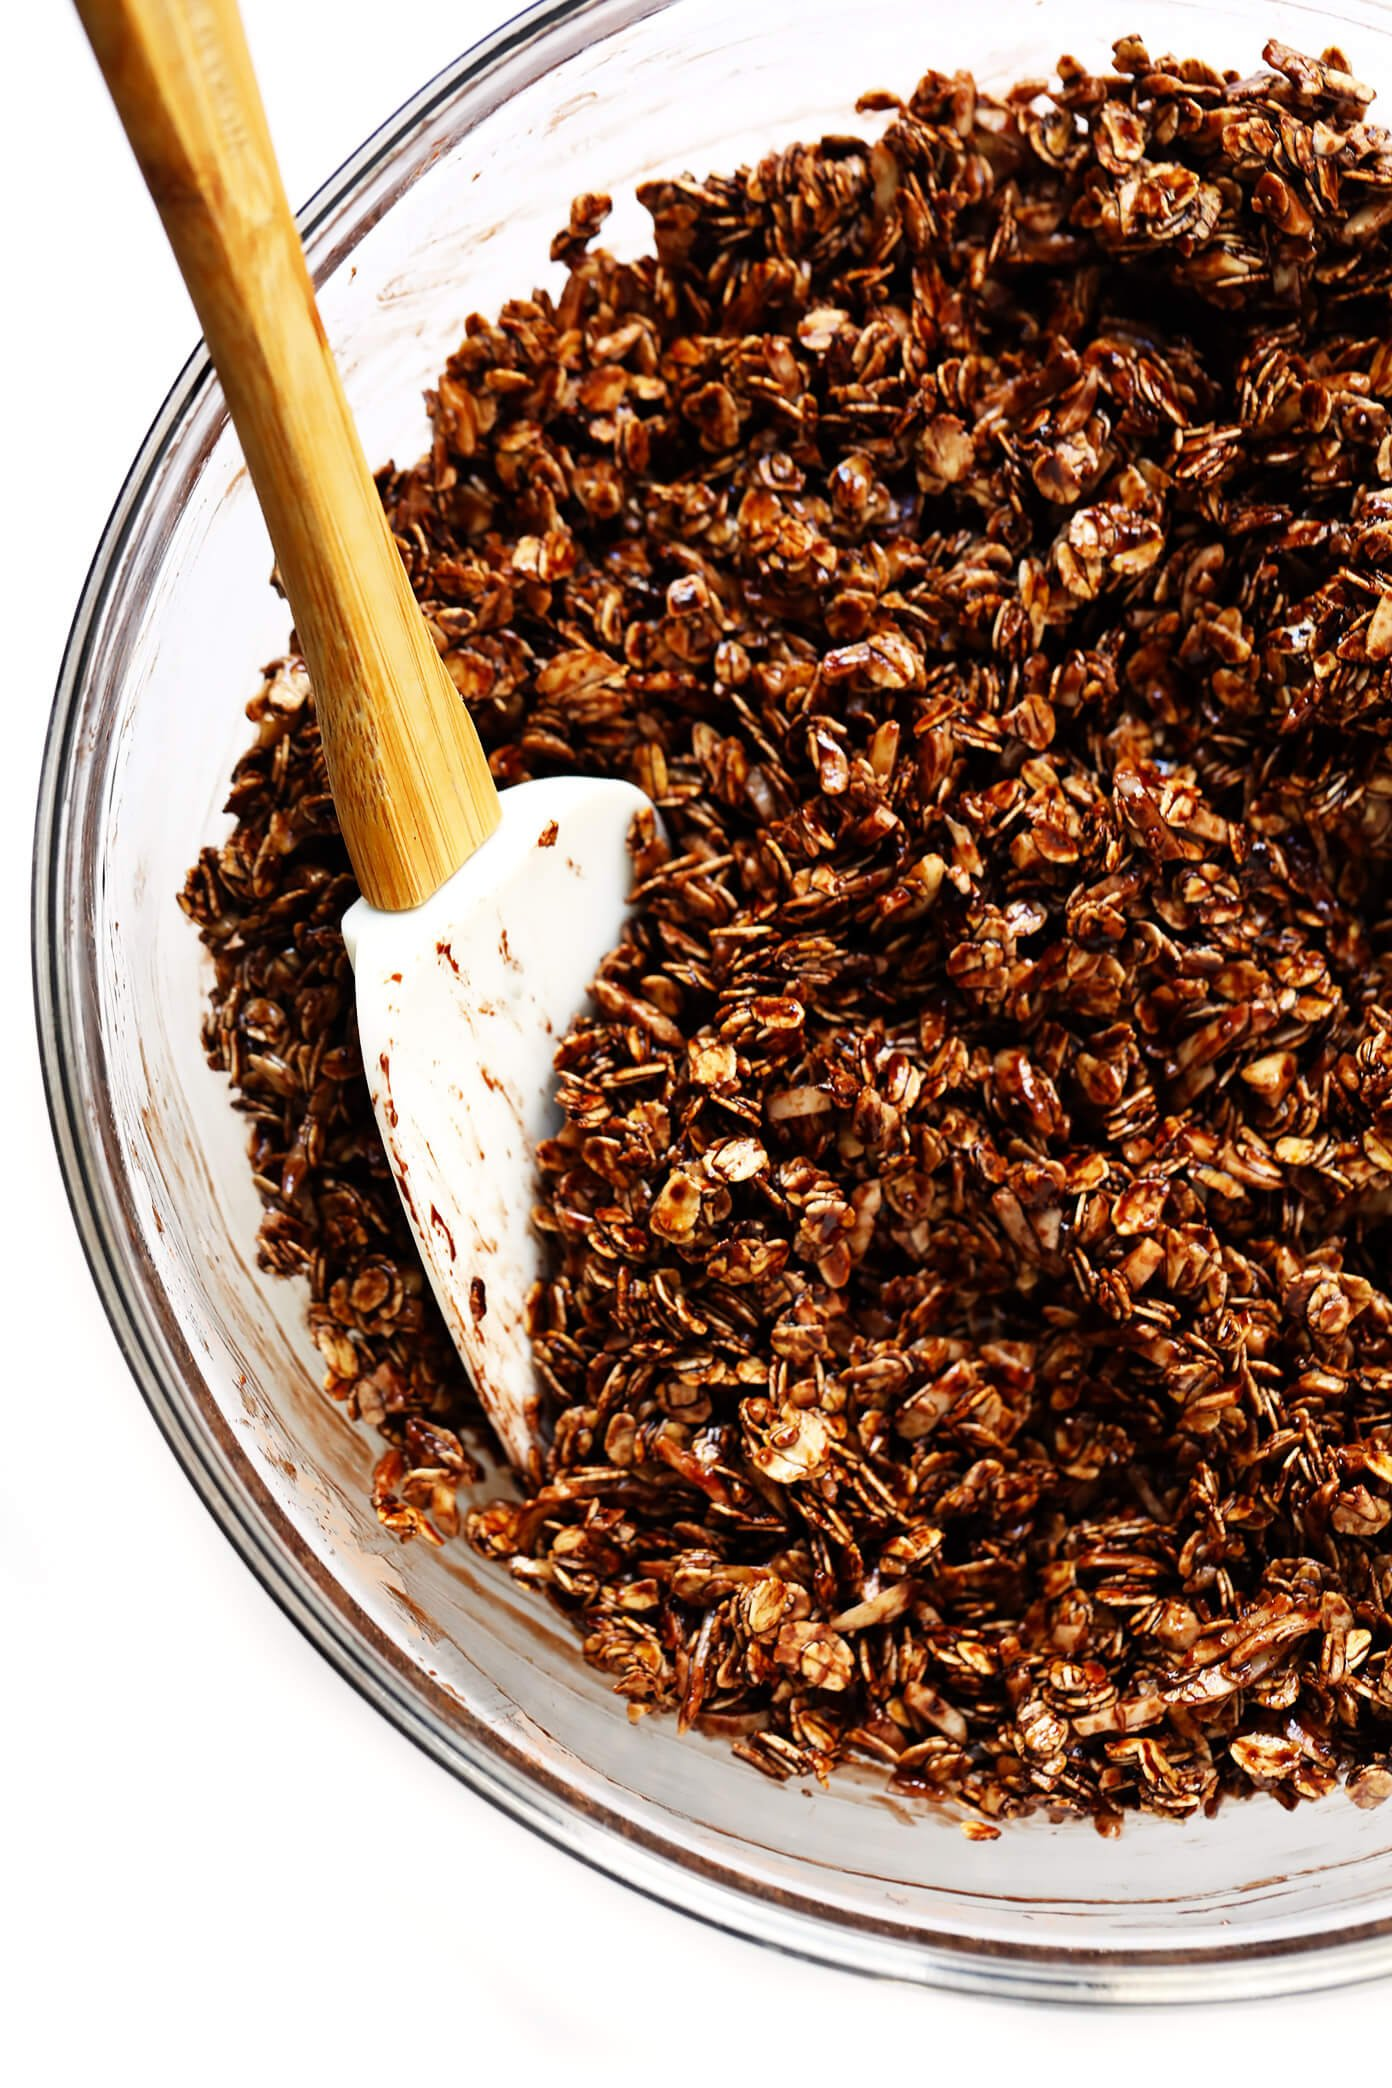 Healthy Chocolate Granola Ingredients